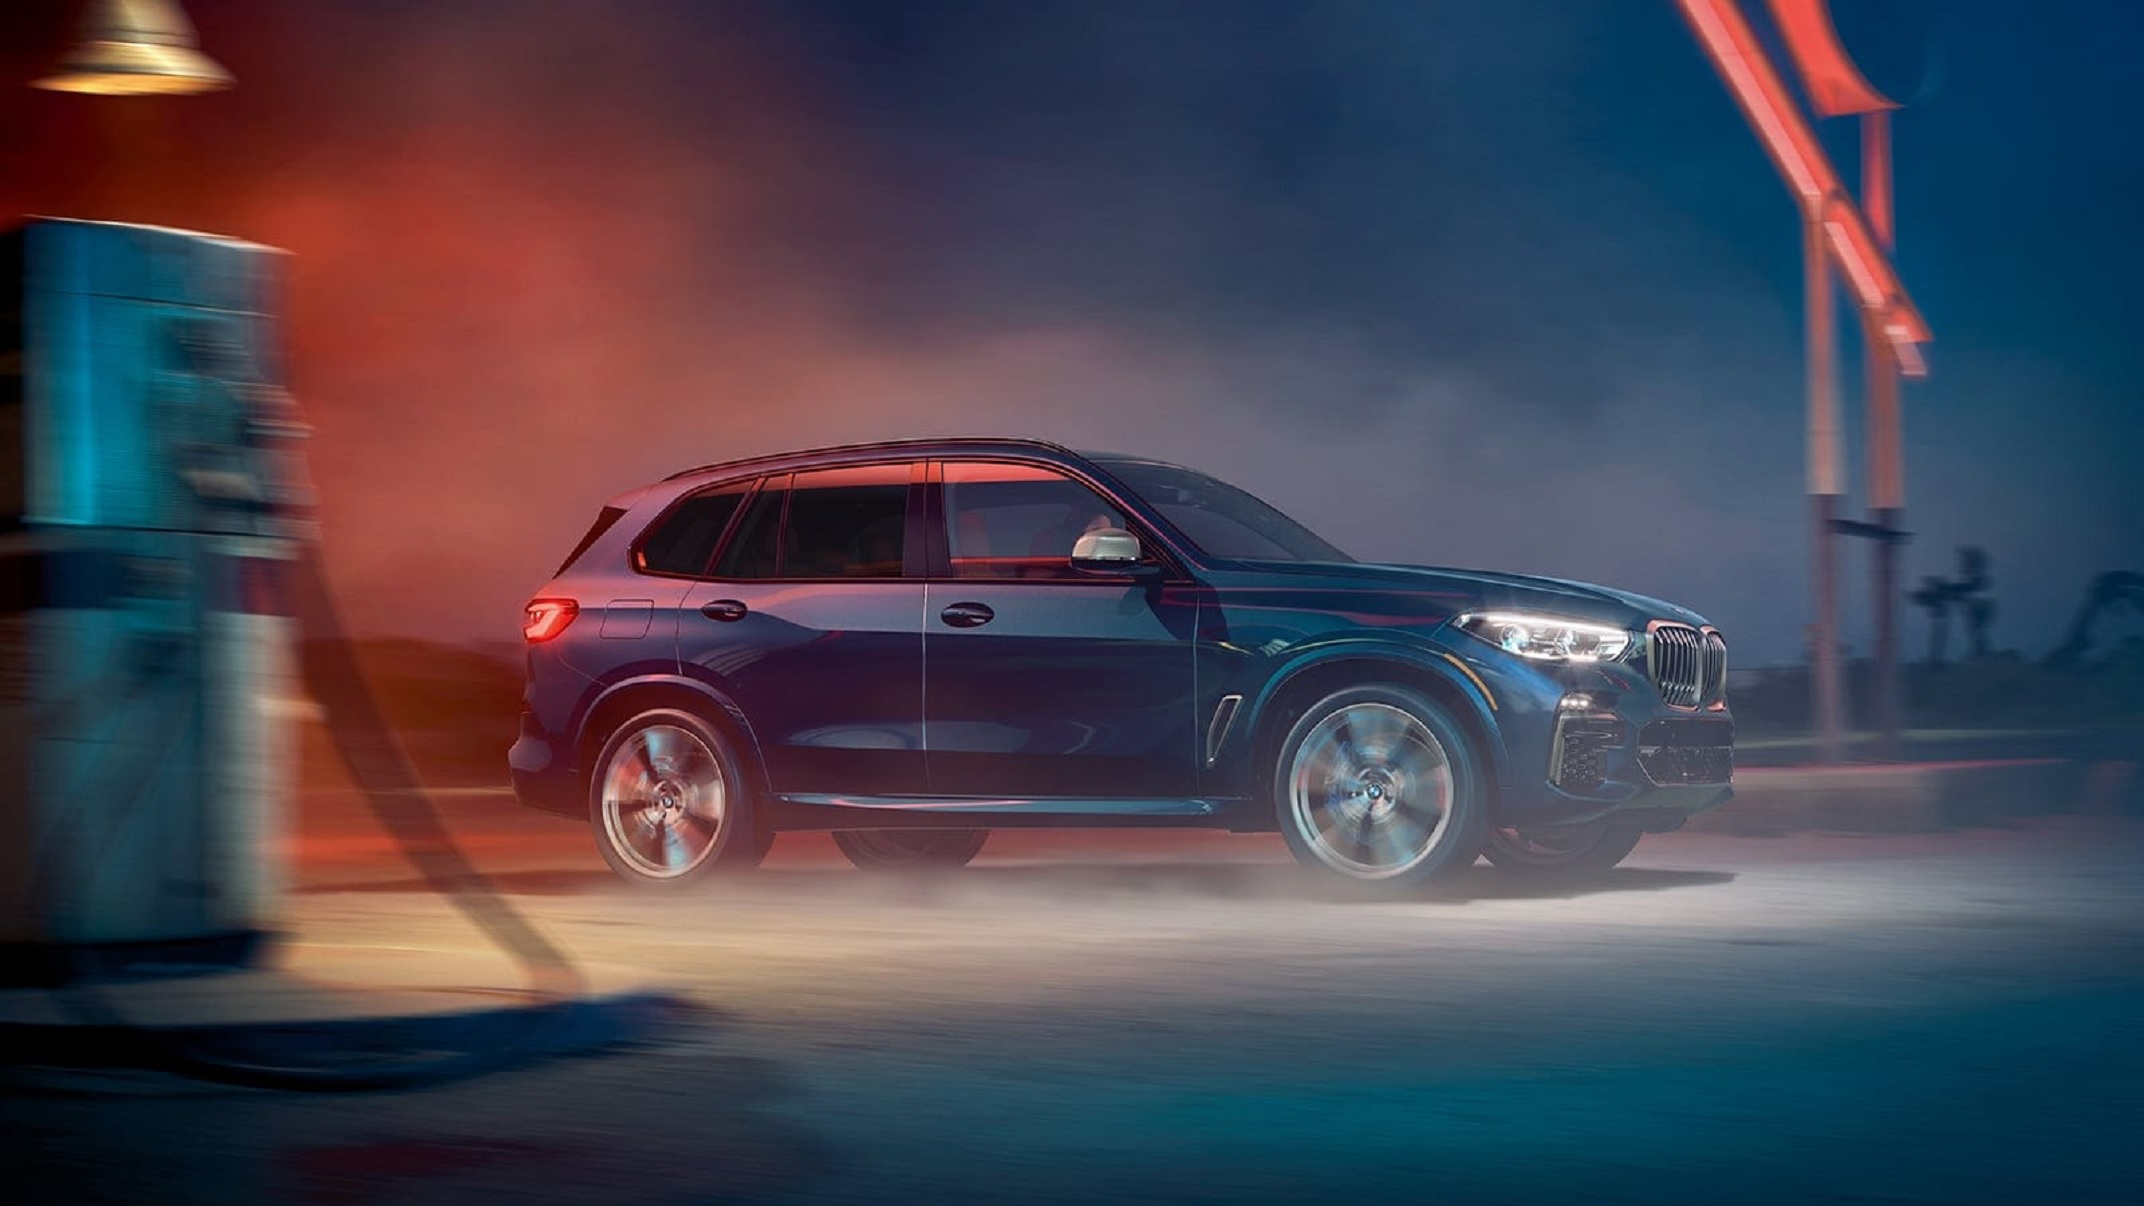 The Bmw Acronym And History Behind It Might Surprise You Motorbiscuit Usnewsmail